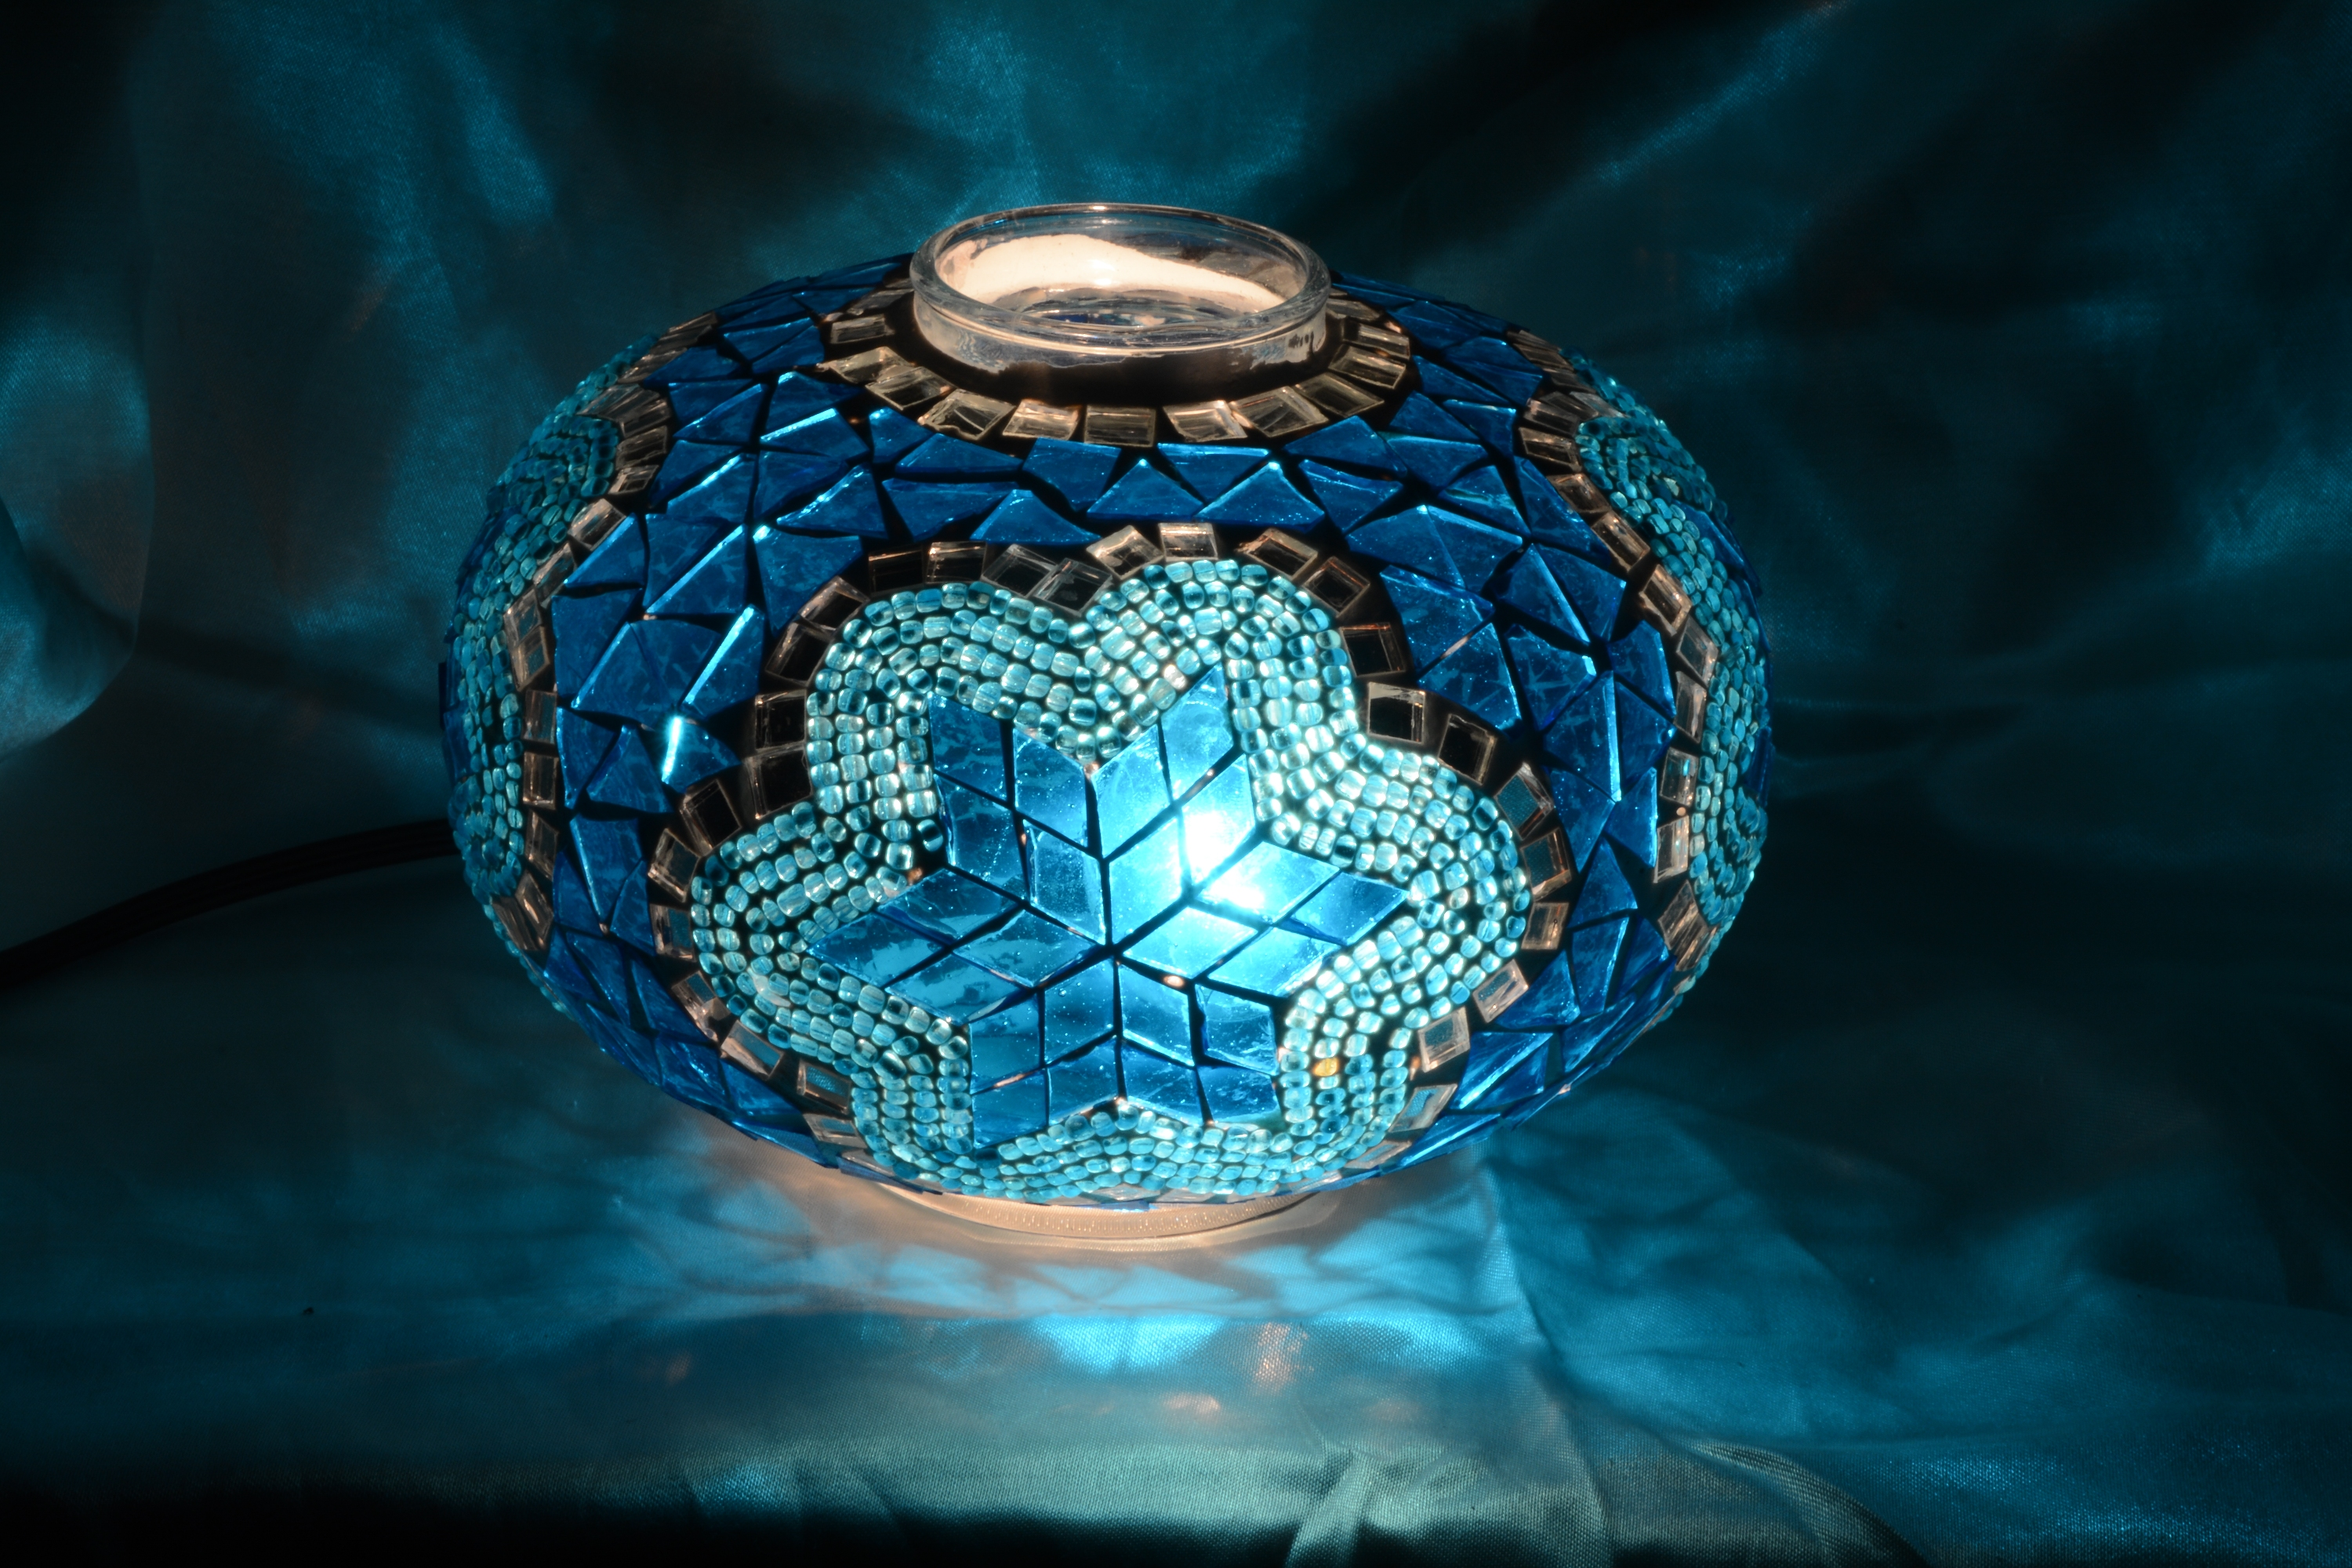 Size 3 mosaic lamp glass models